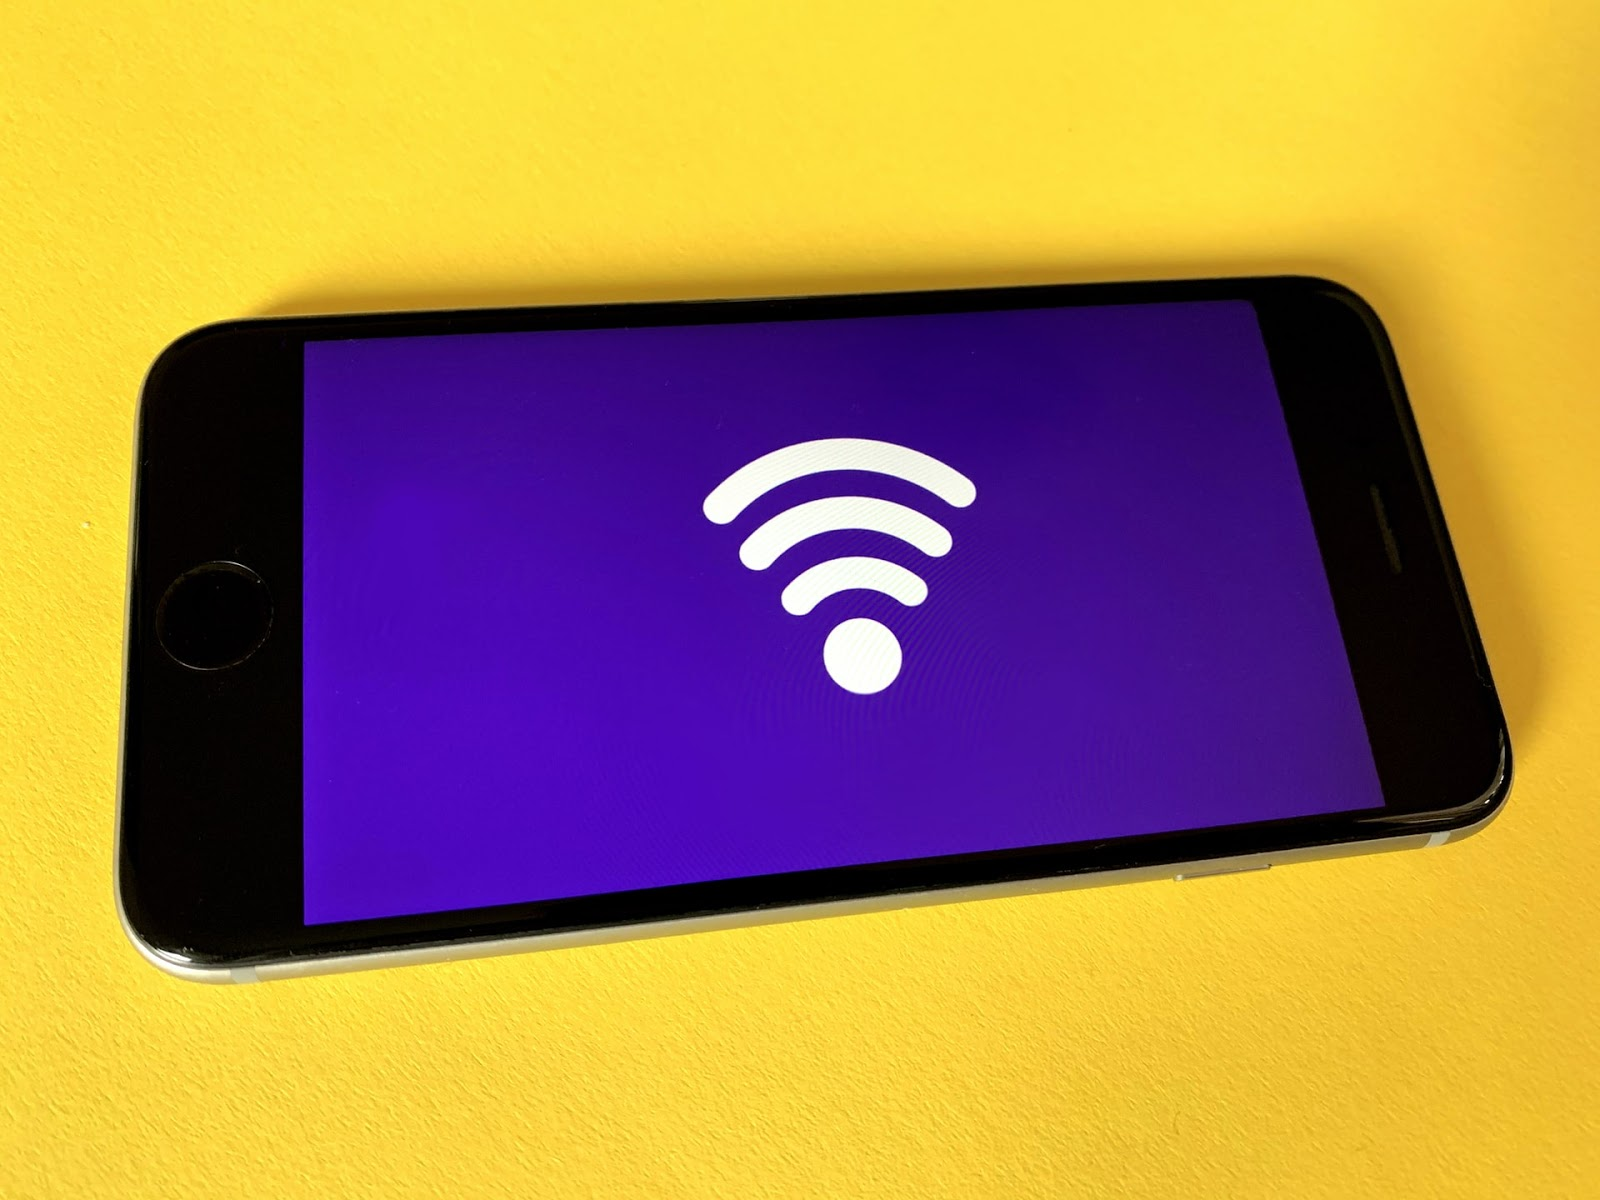 Free Wi-Fi - Learn How to Set Up Through This App